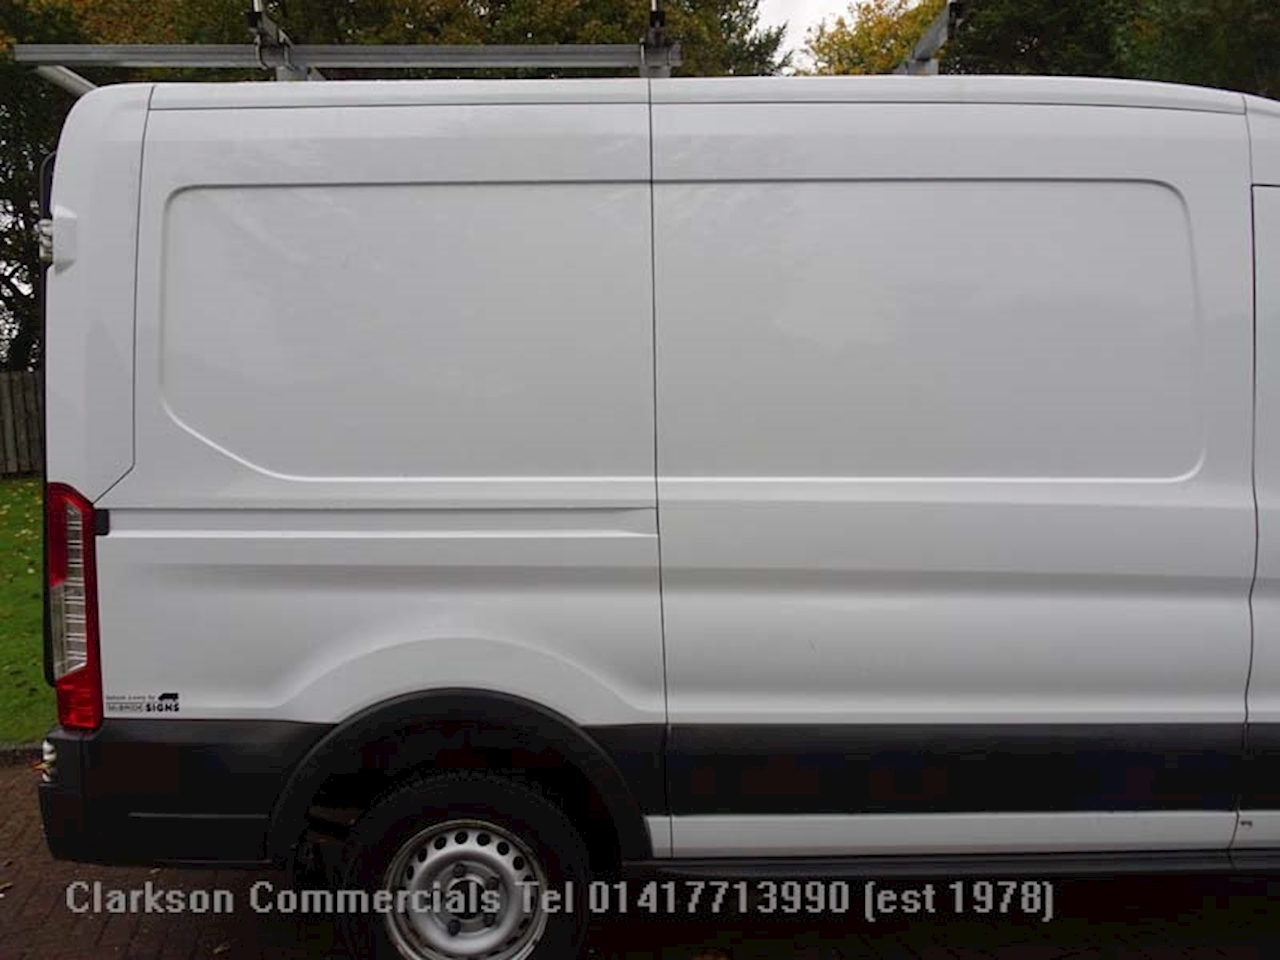 Ford Transit 2.0 350 EcoBlue Diesel Manual FWD L2 H2 EU6 (130 ps) 2.0 5dr Panel Van Manual Diesel